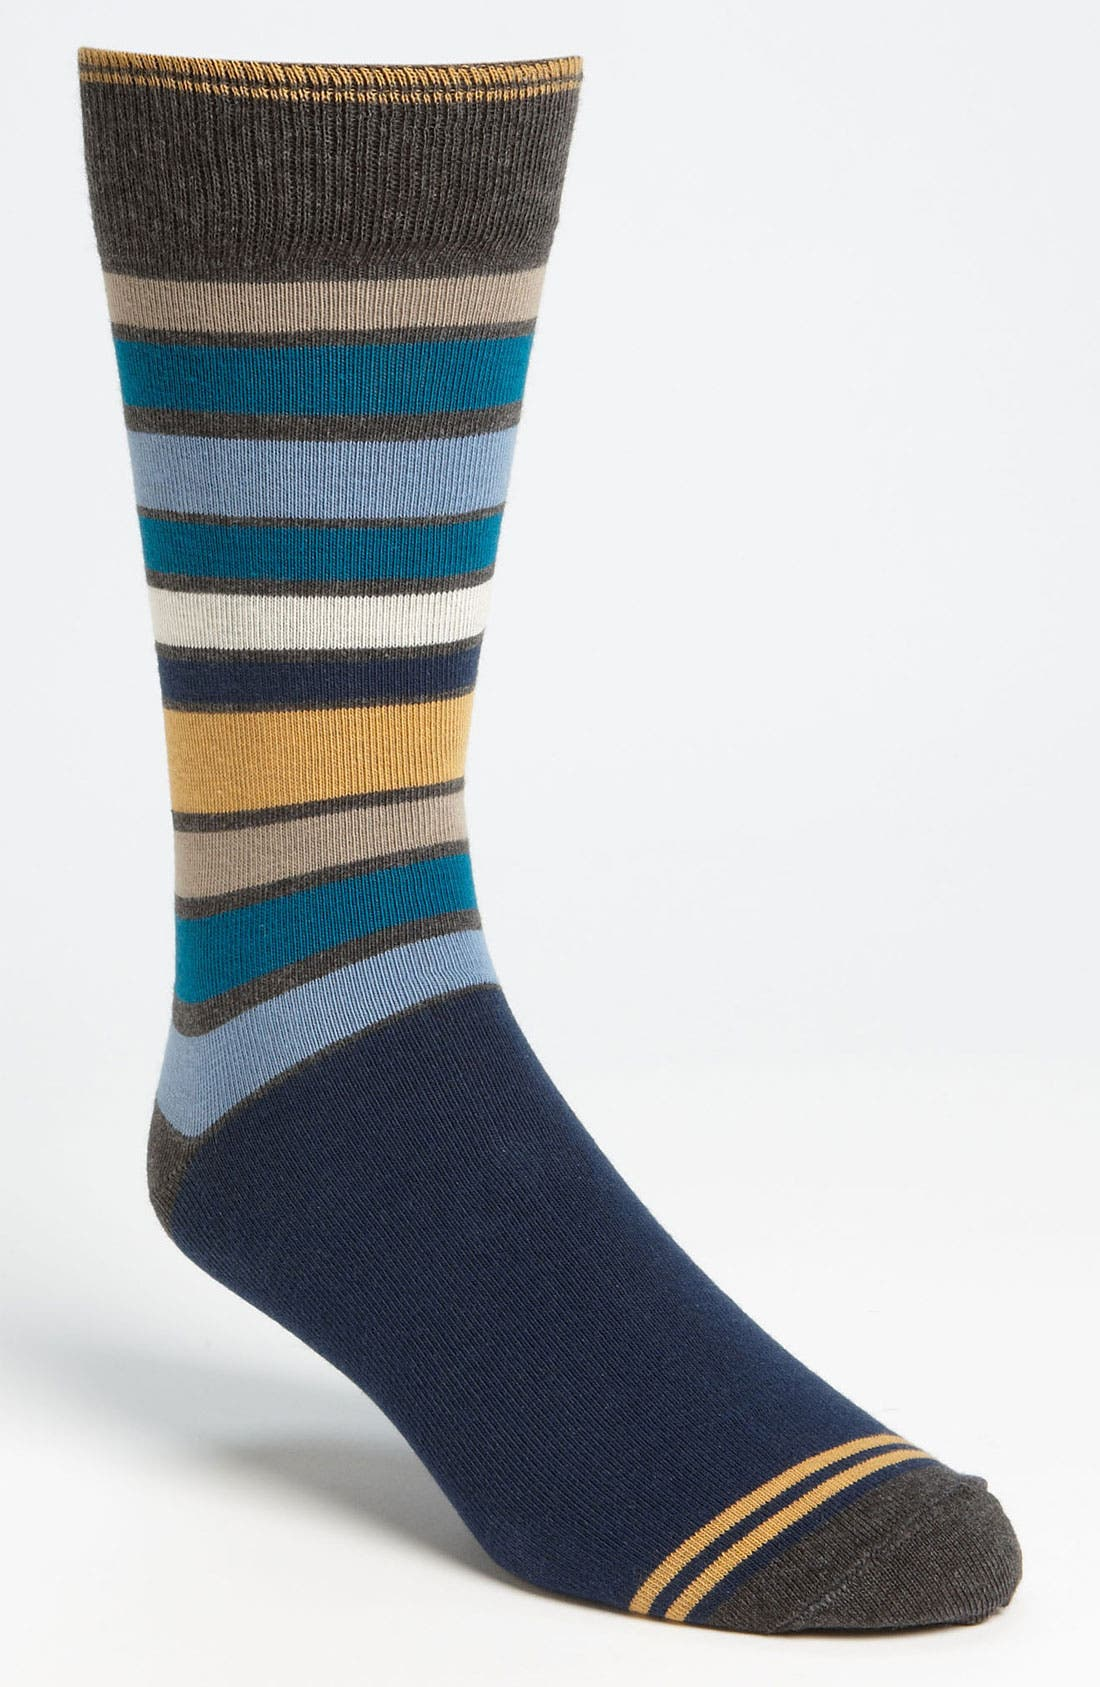 Alternate Image 1 Selected - Pact 'Blues' Socks